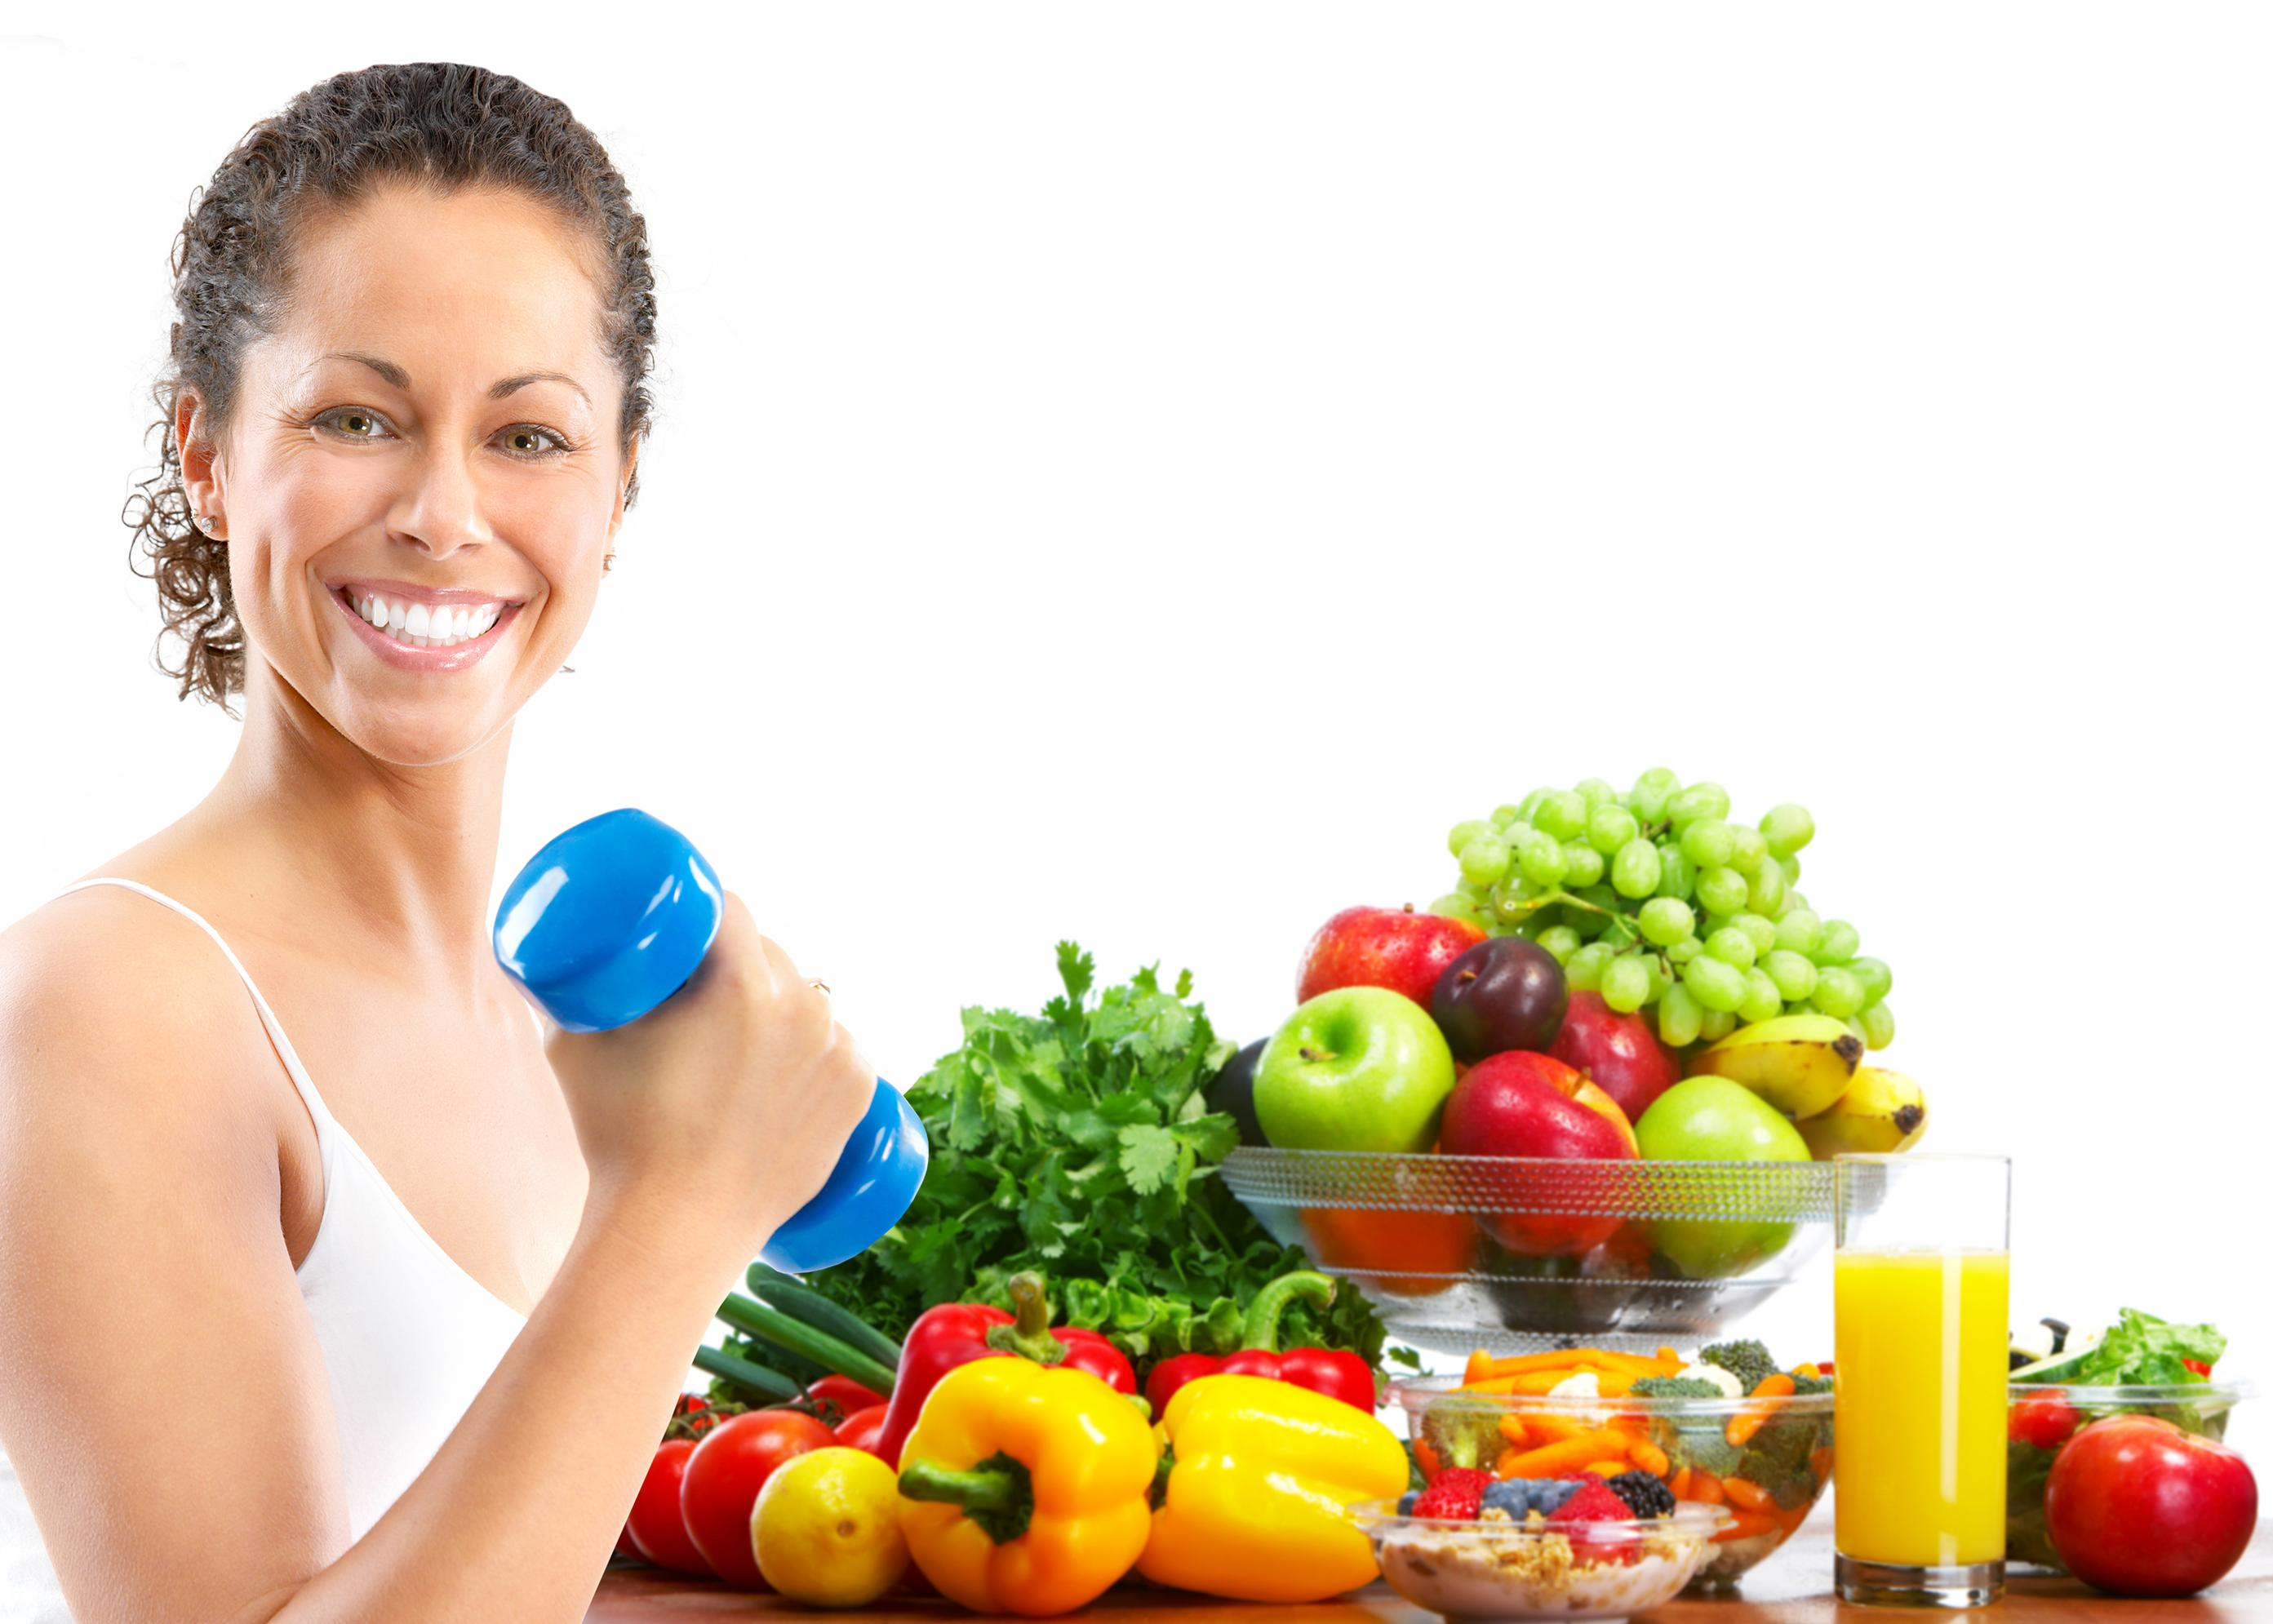 Health and Wellness 360 Degrees